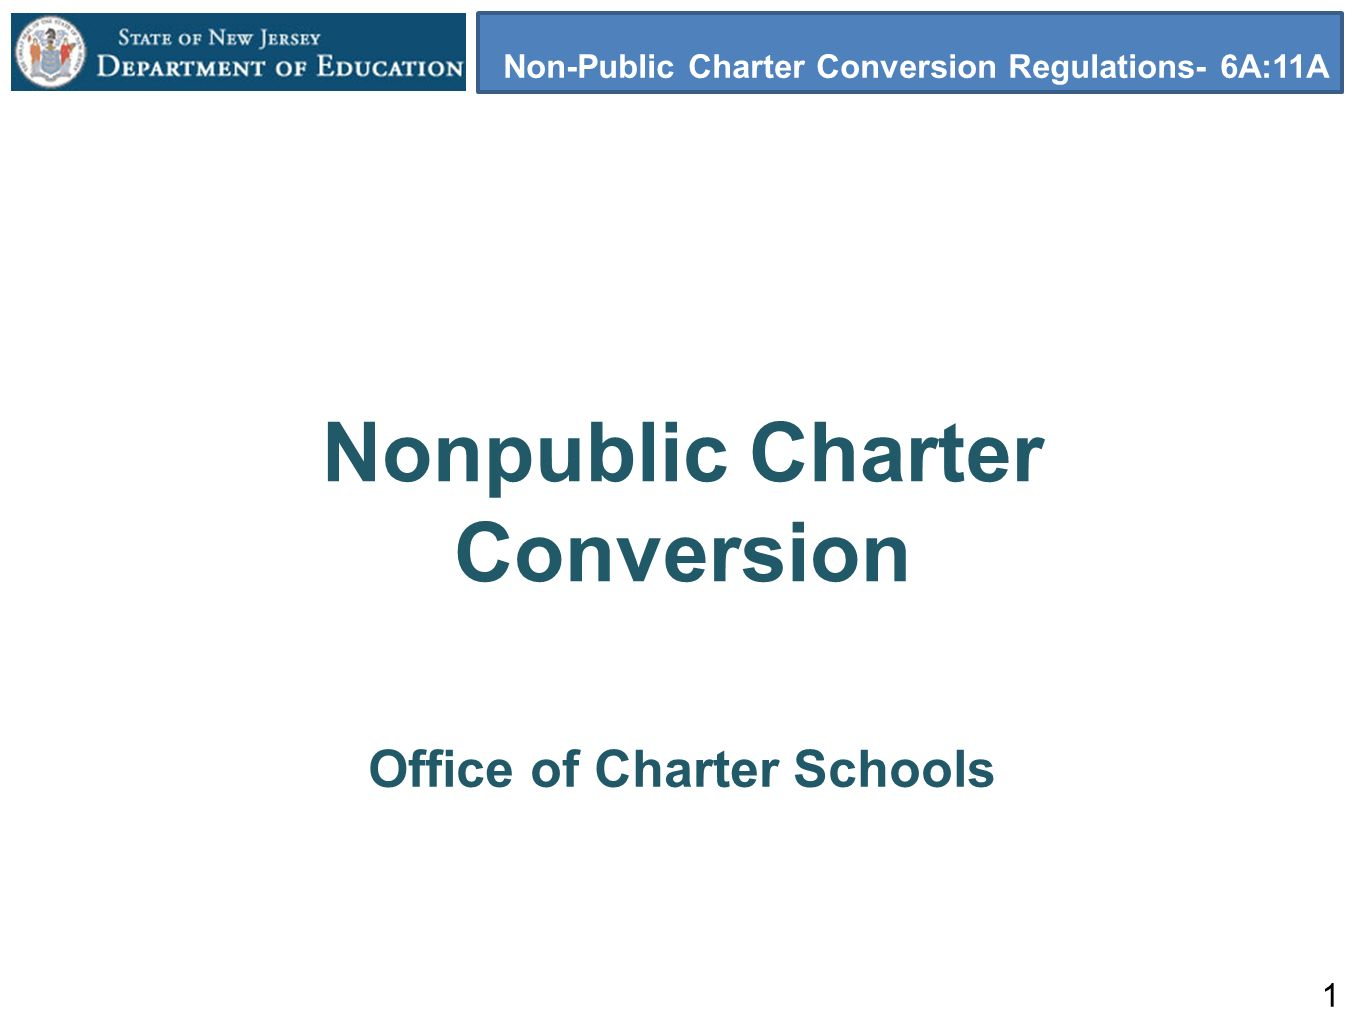 1 Nonpublic Charter Conversion Office of Charter Schools Non-Public Charter Conversion Regulations- 6A:11A